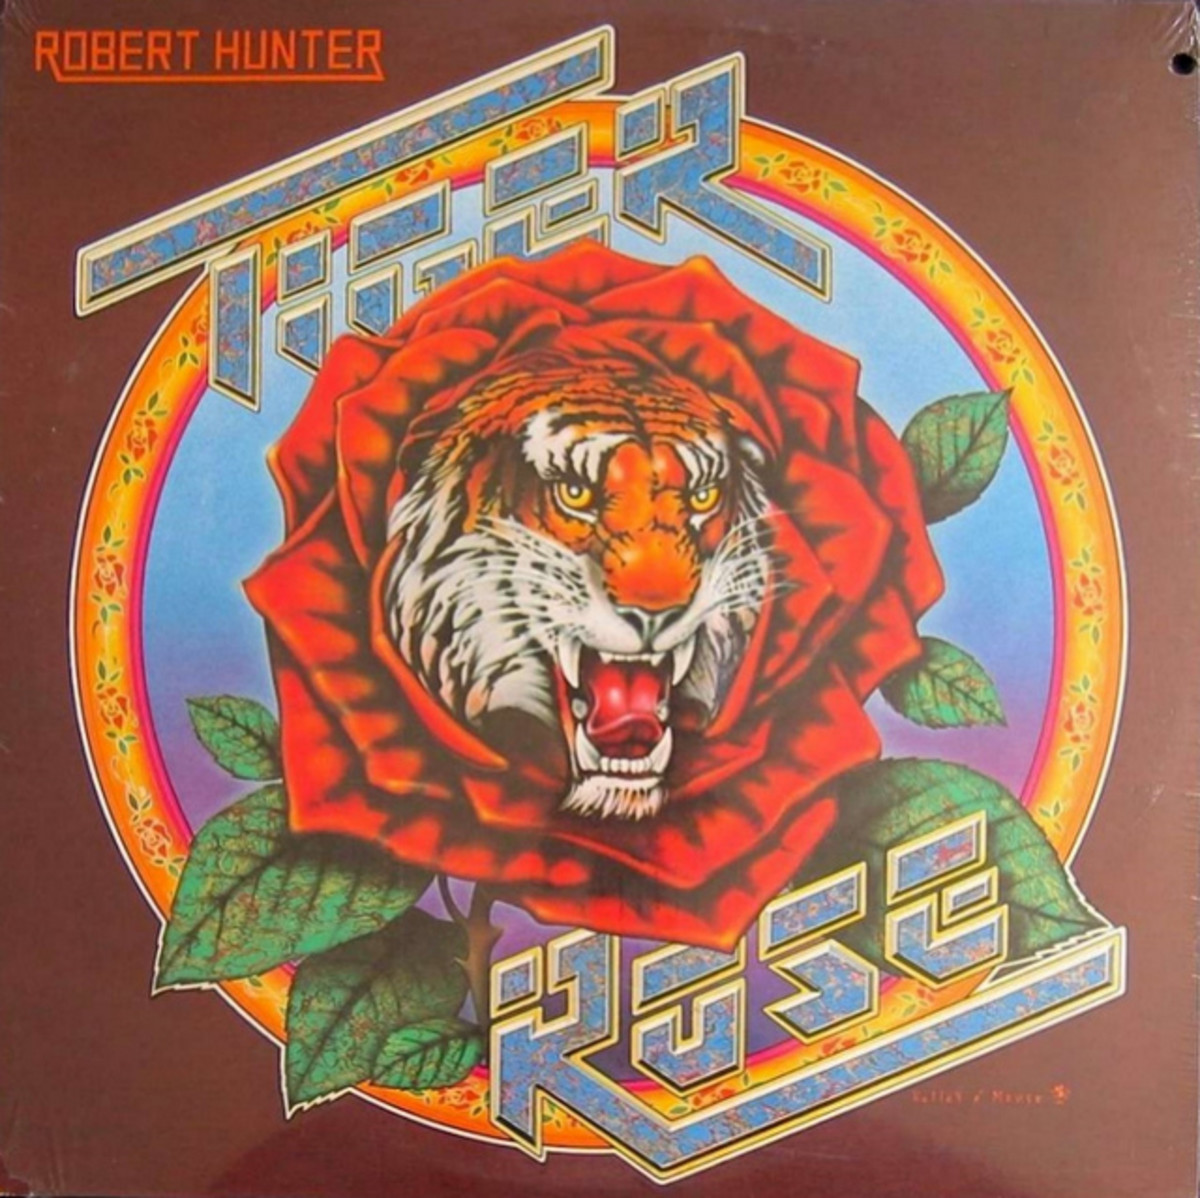 "Robert Hunter ""Tiger Rose"" Round Records RX 105 12"" LP Vinyl Record US Pressing (1975) Album Cover Art by Alton Kelley & Stanley Mouse"